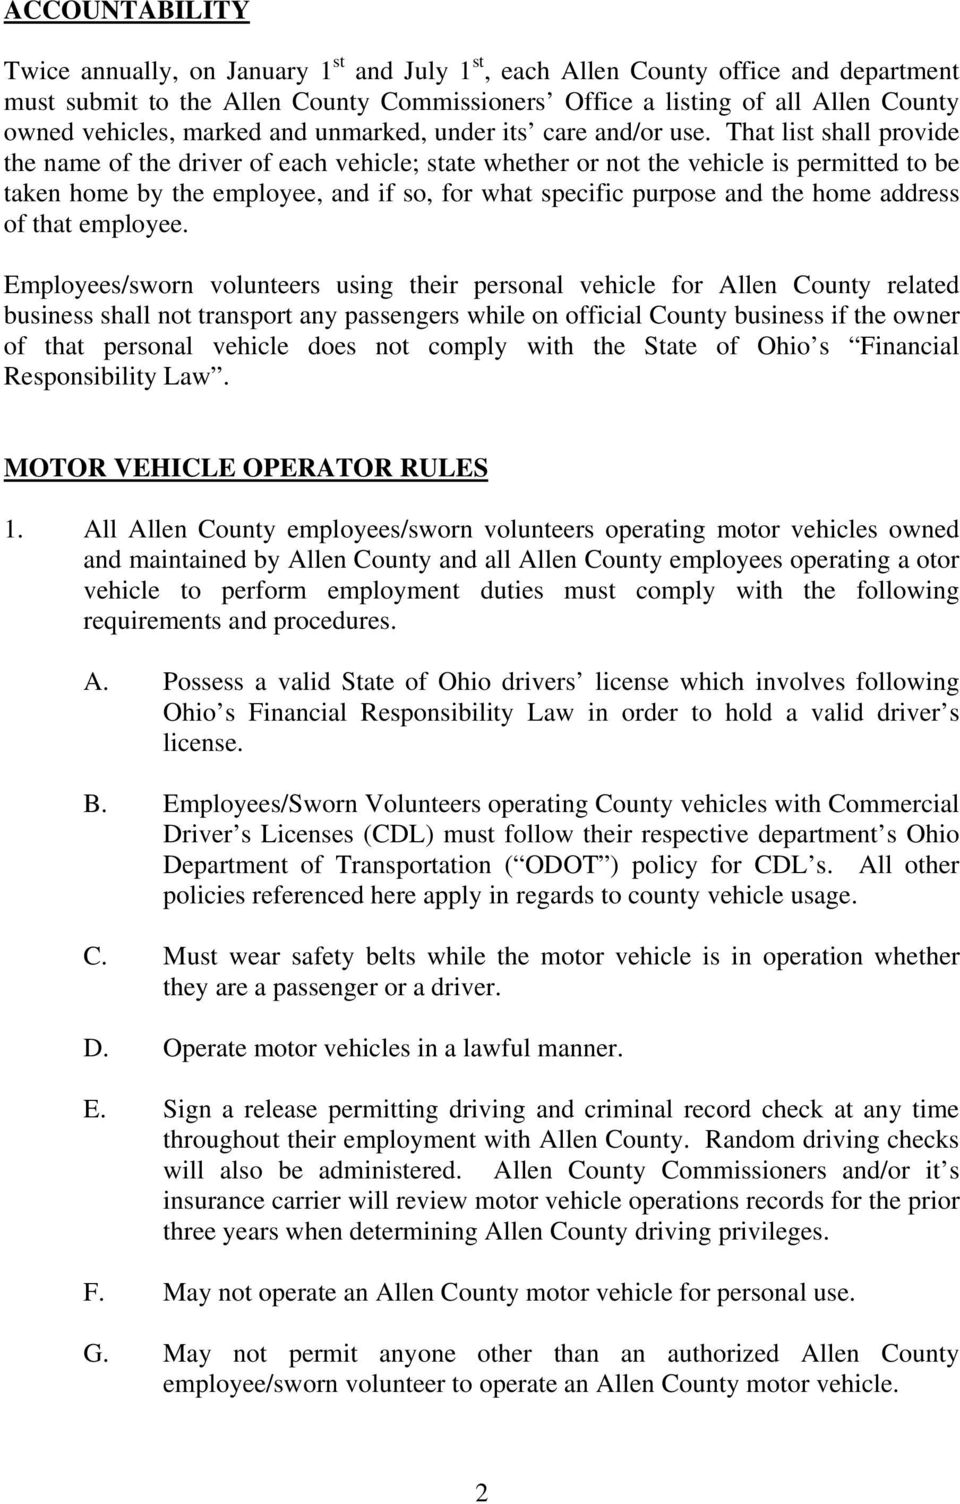 That list shall provide the name of the driver of each vehicle; state whether or not the vehicle is permitted to be taken home by the employee, and if so, for what specific purpose and the home